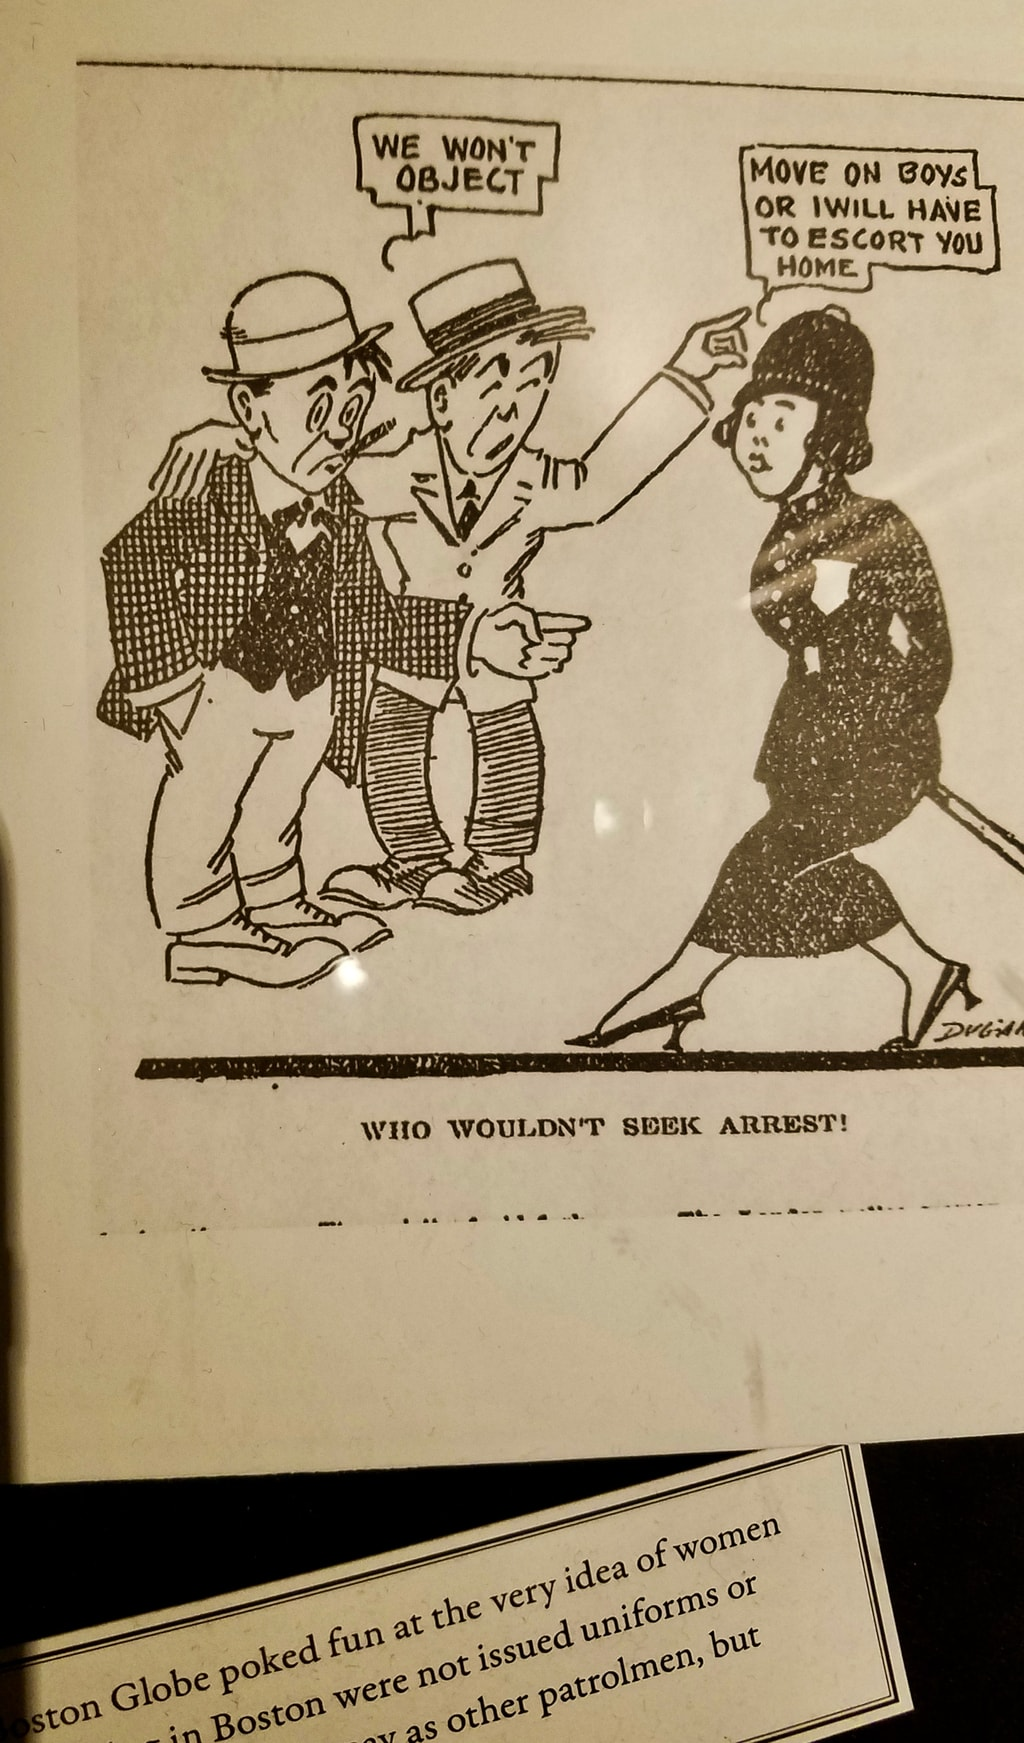 Woman Cop Cartoon, Loews Boston Hotel